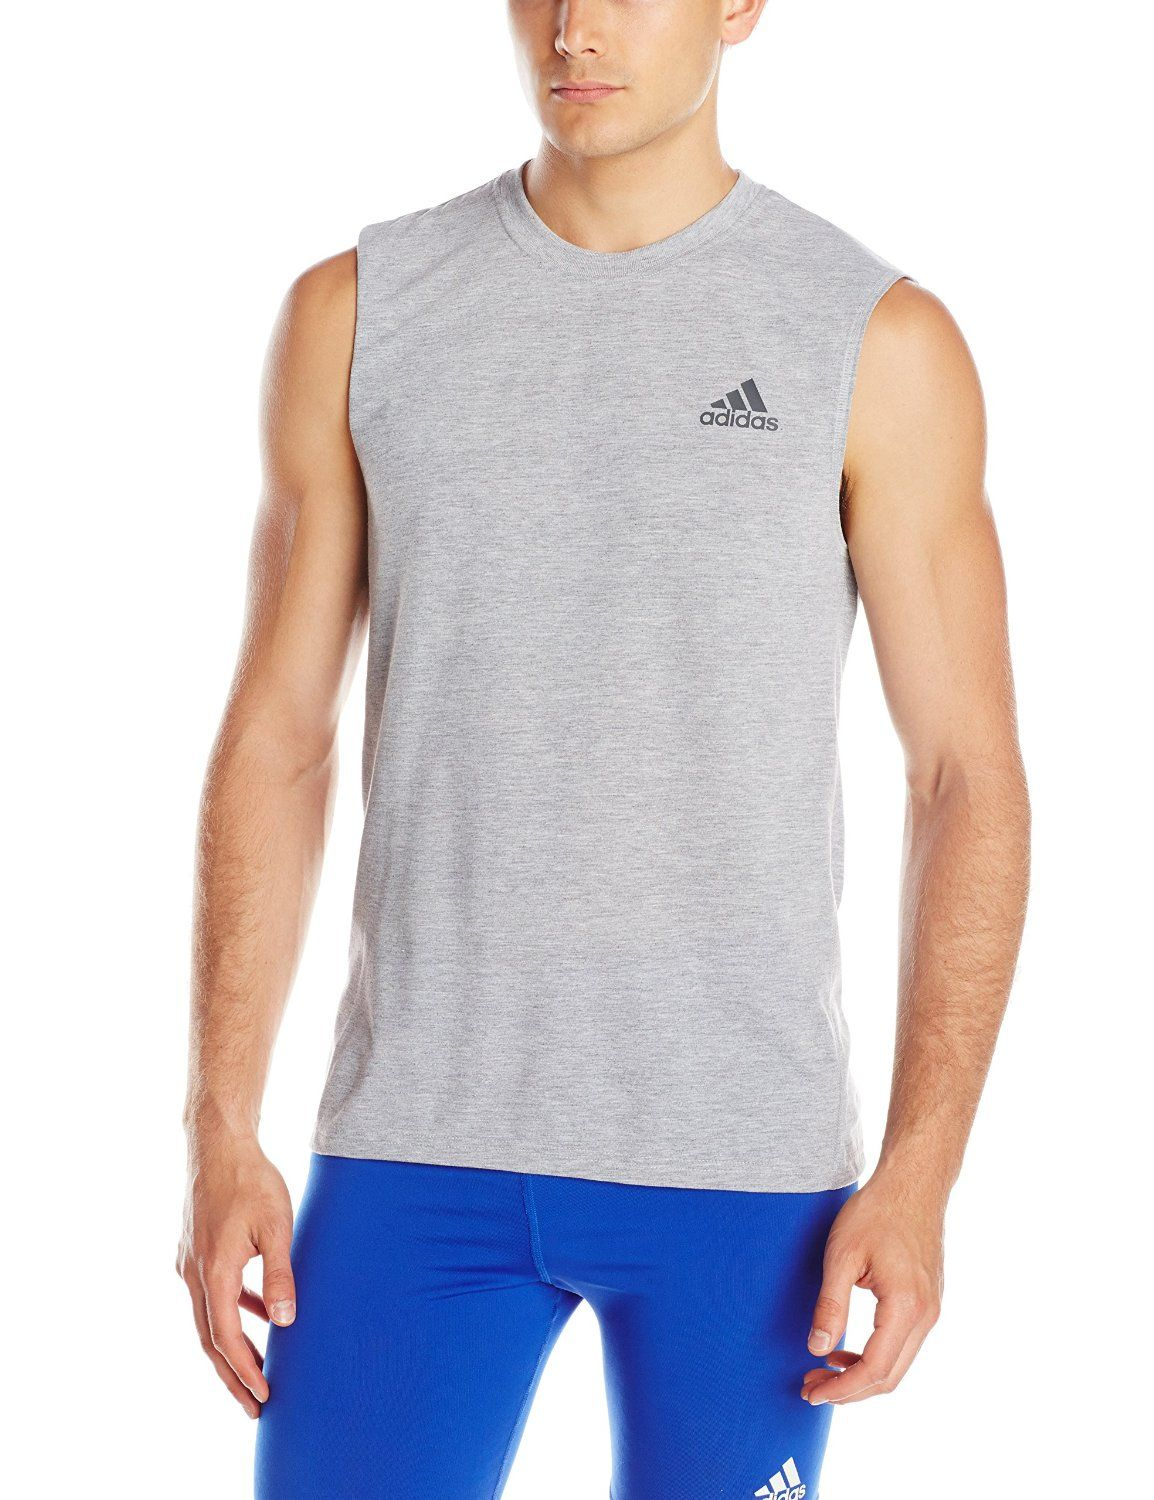 3dcfef6c72302 Amazon.com: adidas Performance Men's Ultimate Sleeveless Crew Tee ...